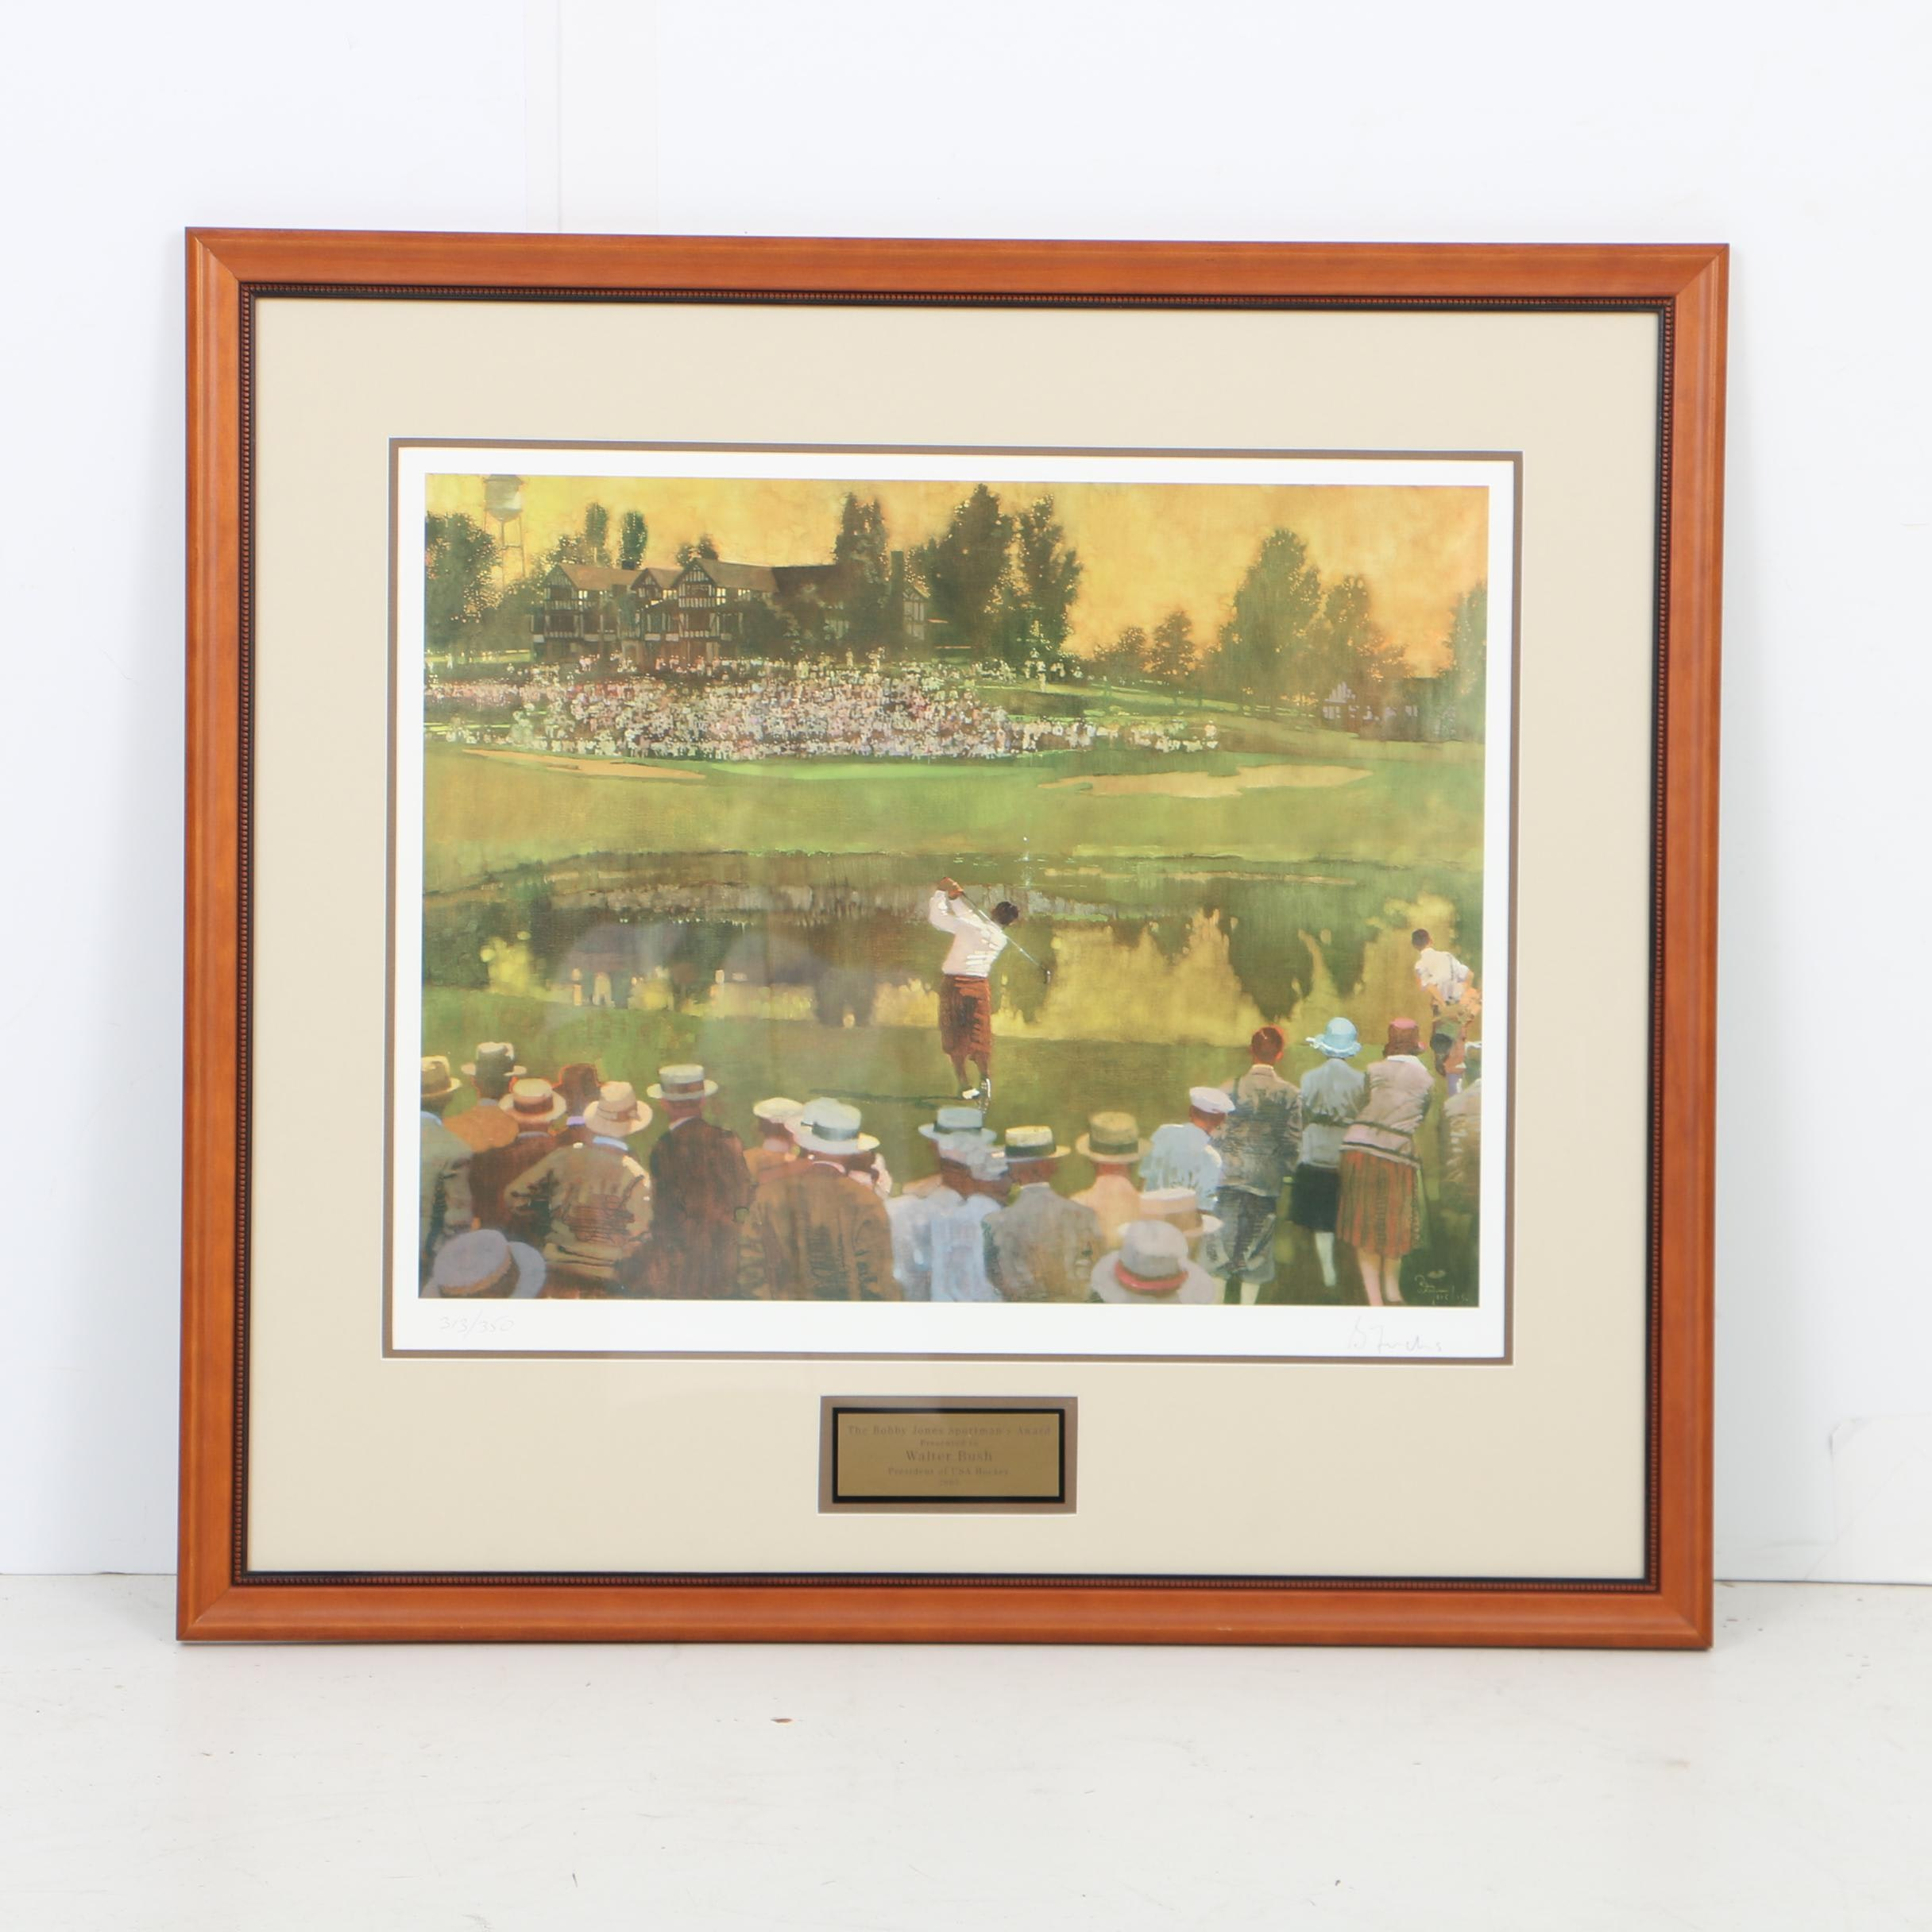 2005 Bobby Jones Sportsmanship Award with Bernie Fuchs Offset Lithograph